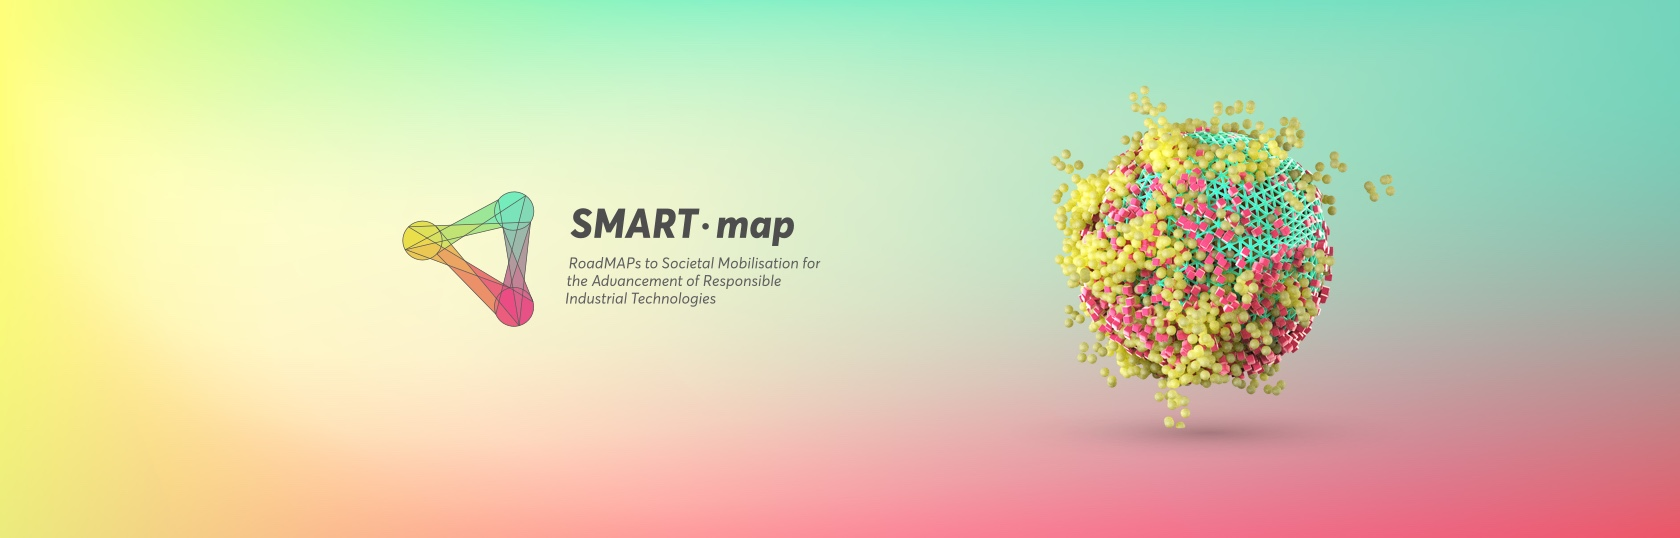 horizon 2020 smart map visual identity logo illustration fabio